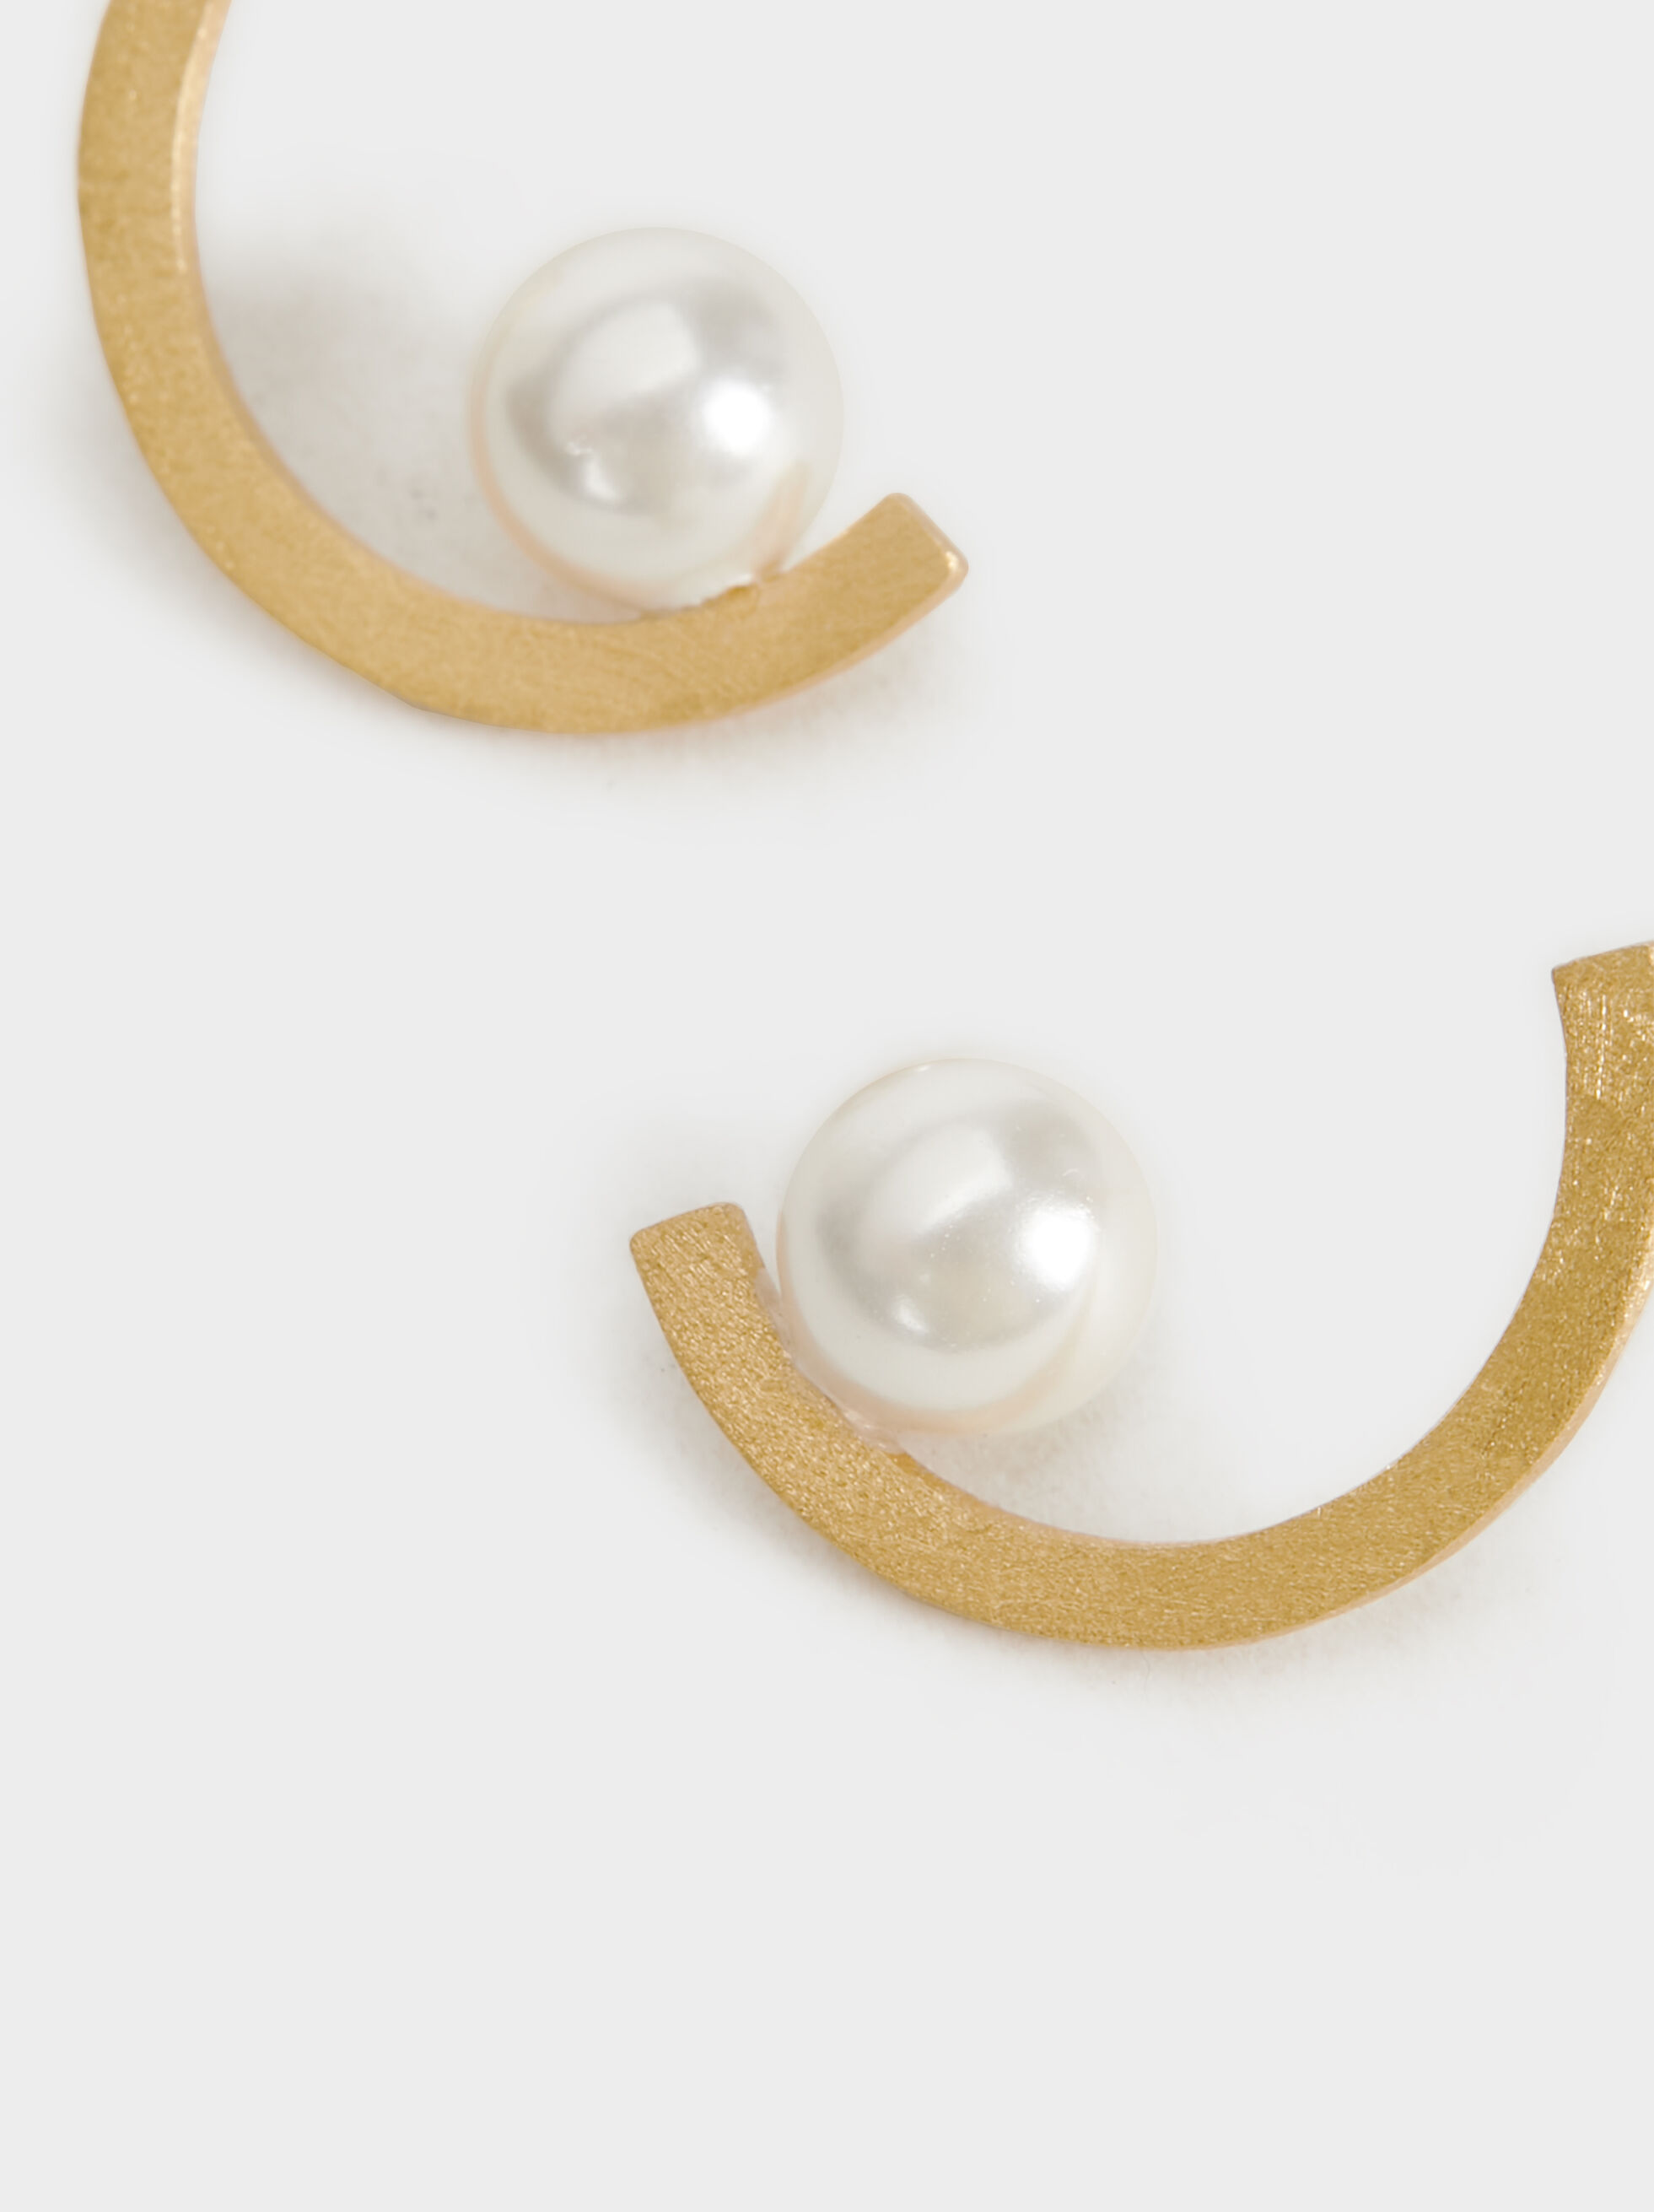 Short Silver 925 Earrings With Faux Pearls, Beige, hi-res